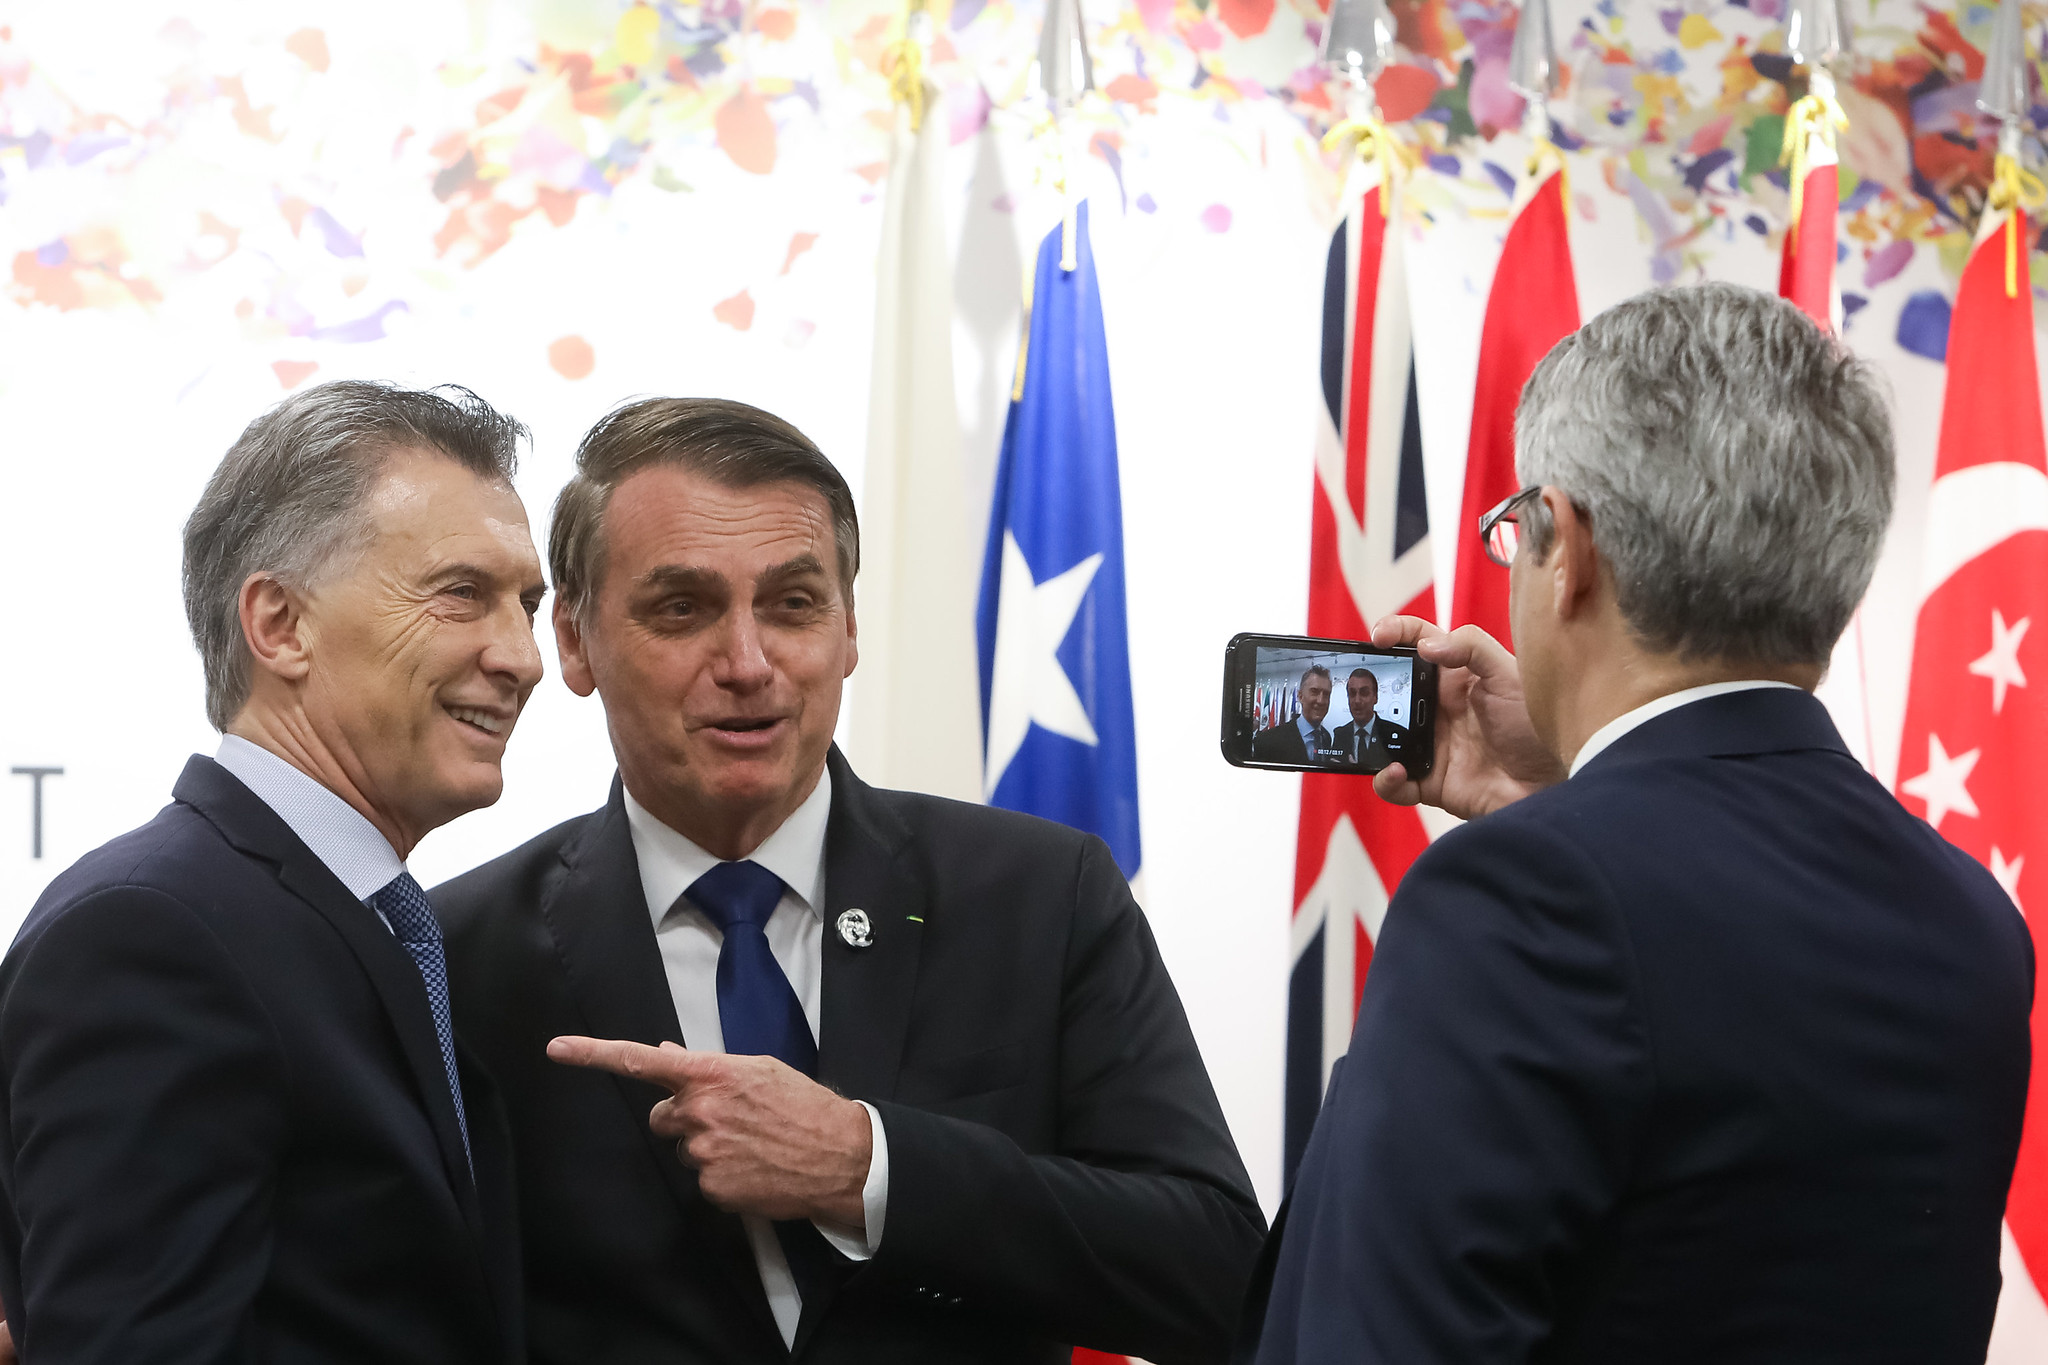 """Bolsonaro's foreign policy is """"amateur and improvised,"""" says diplomat"""